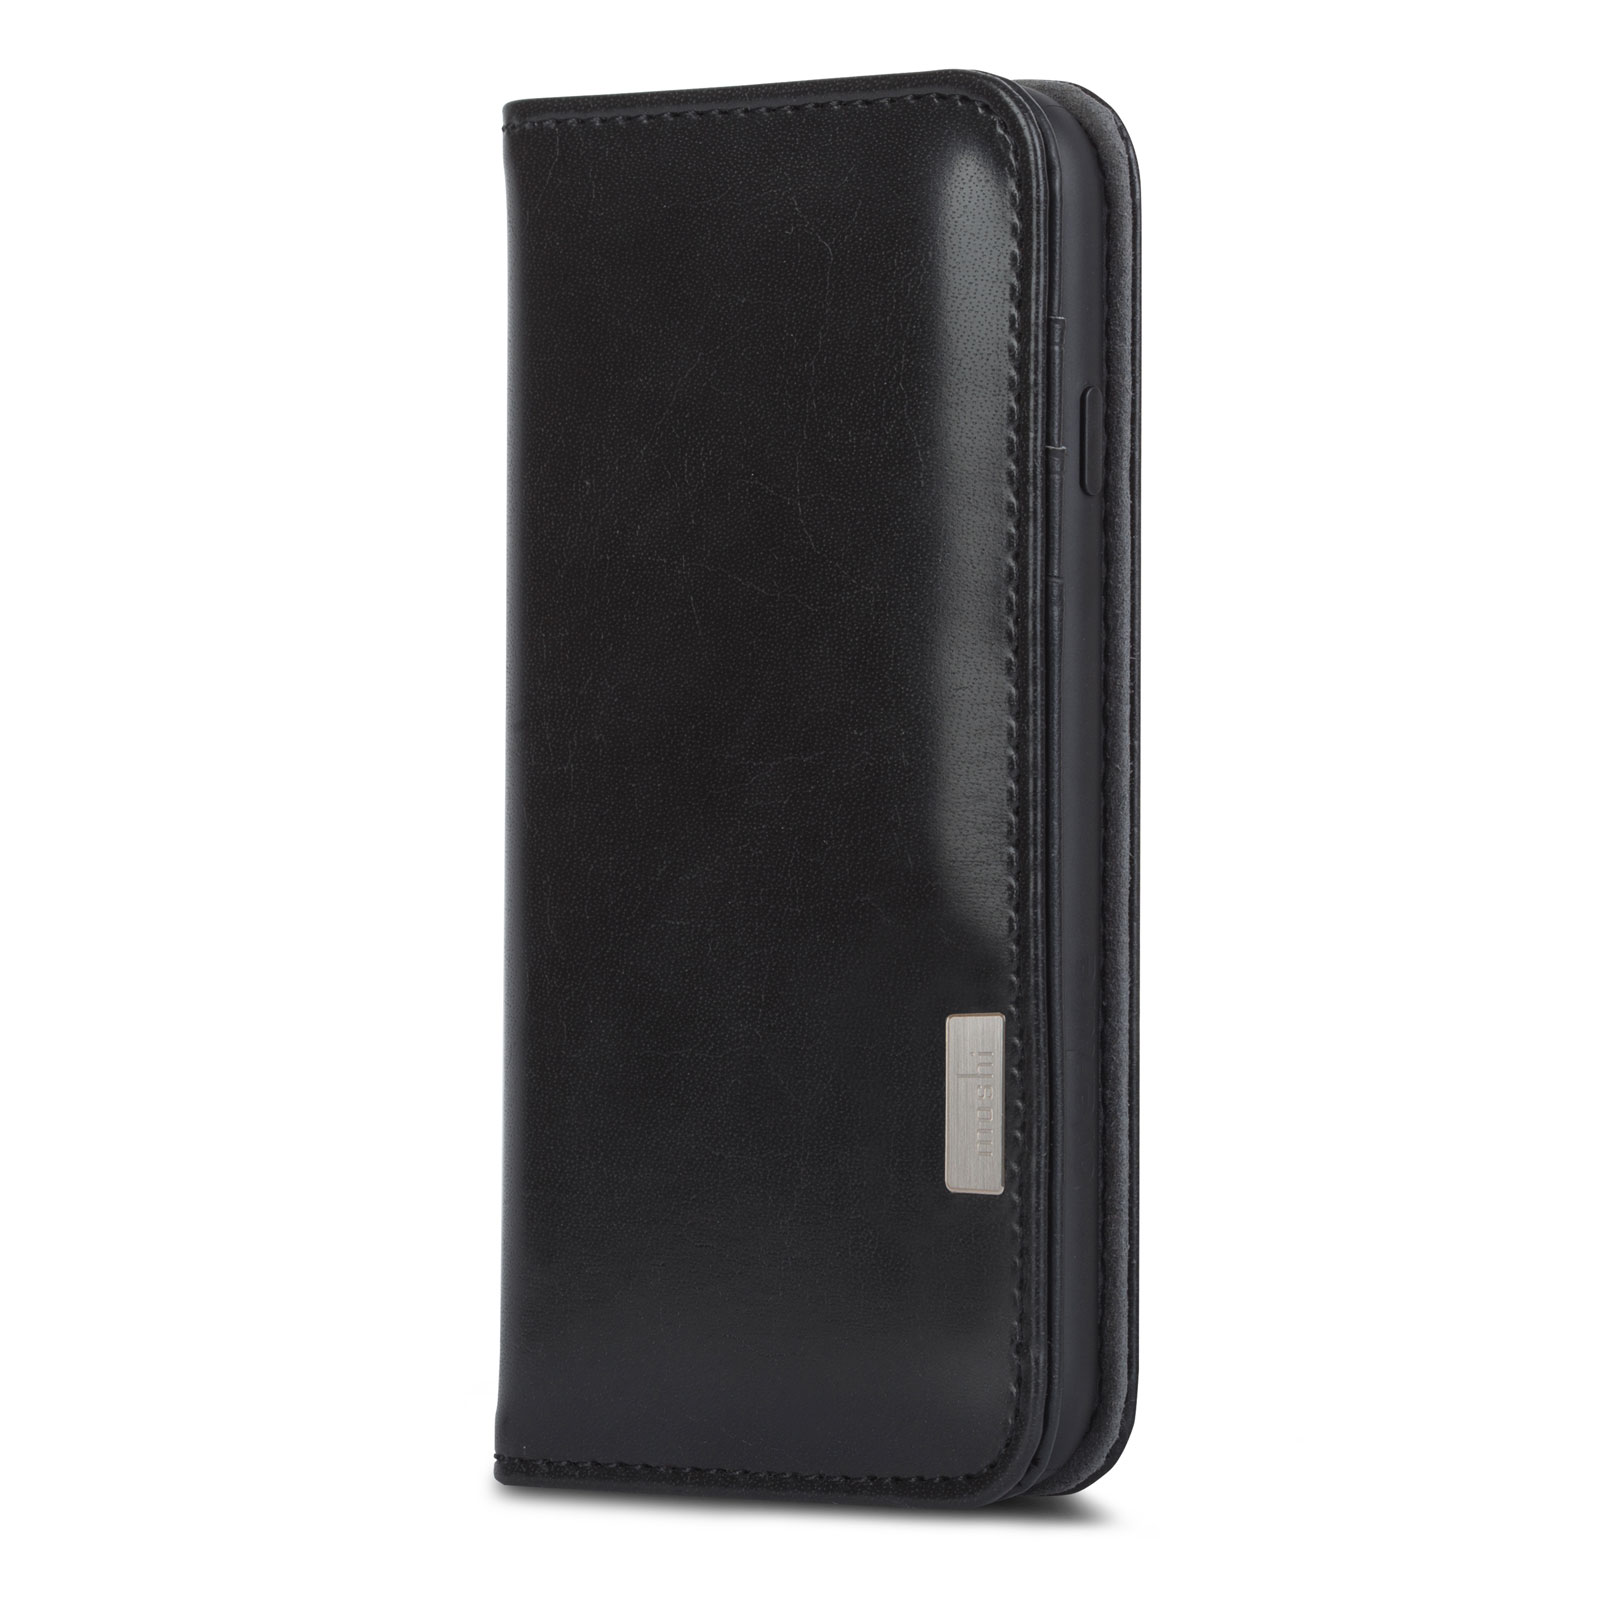 8 plus iphone case wallet